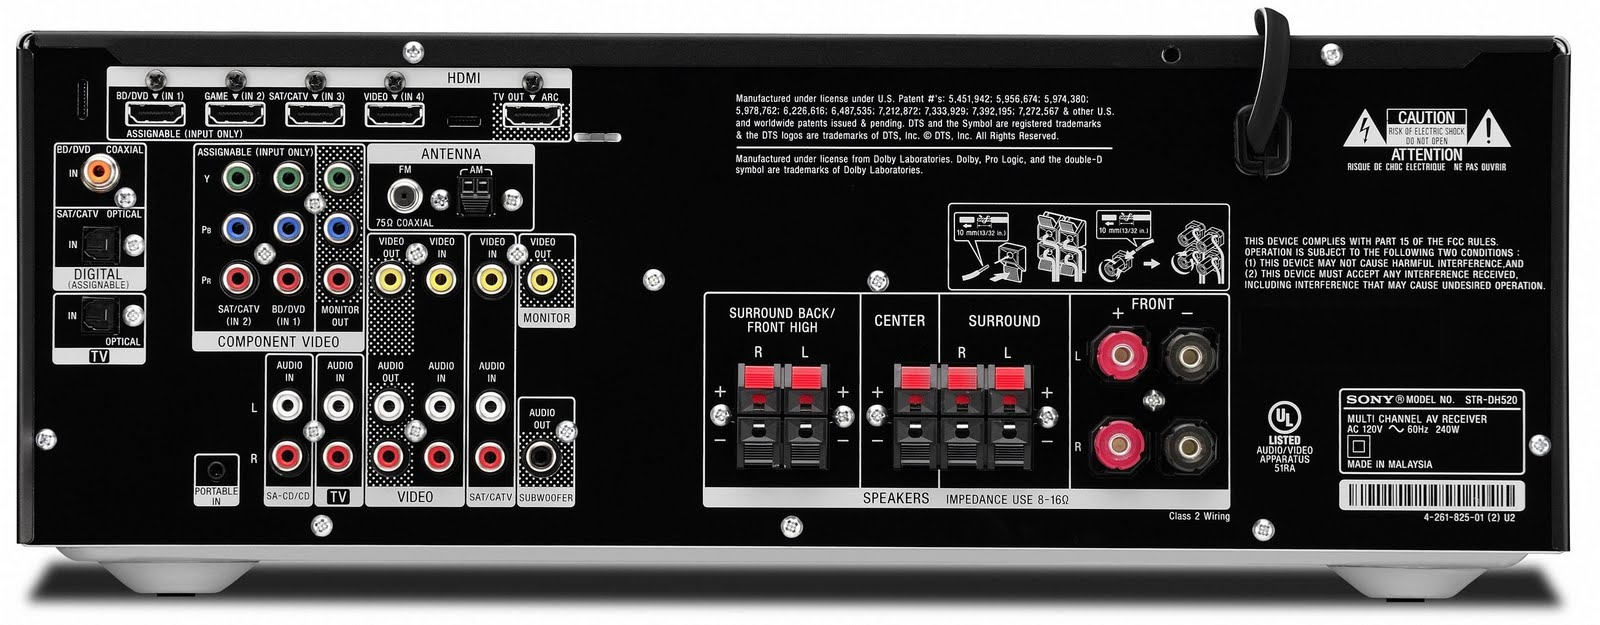 need amp recommendations for polk 6750 5 1 system with two 6751 rh overclock net sony receiver str-dh520 manual sony str dh520 service manual